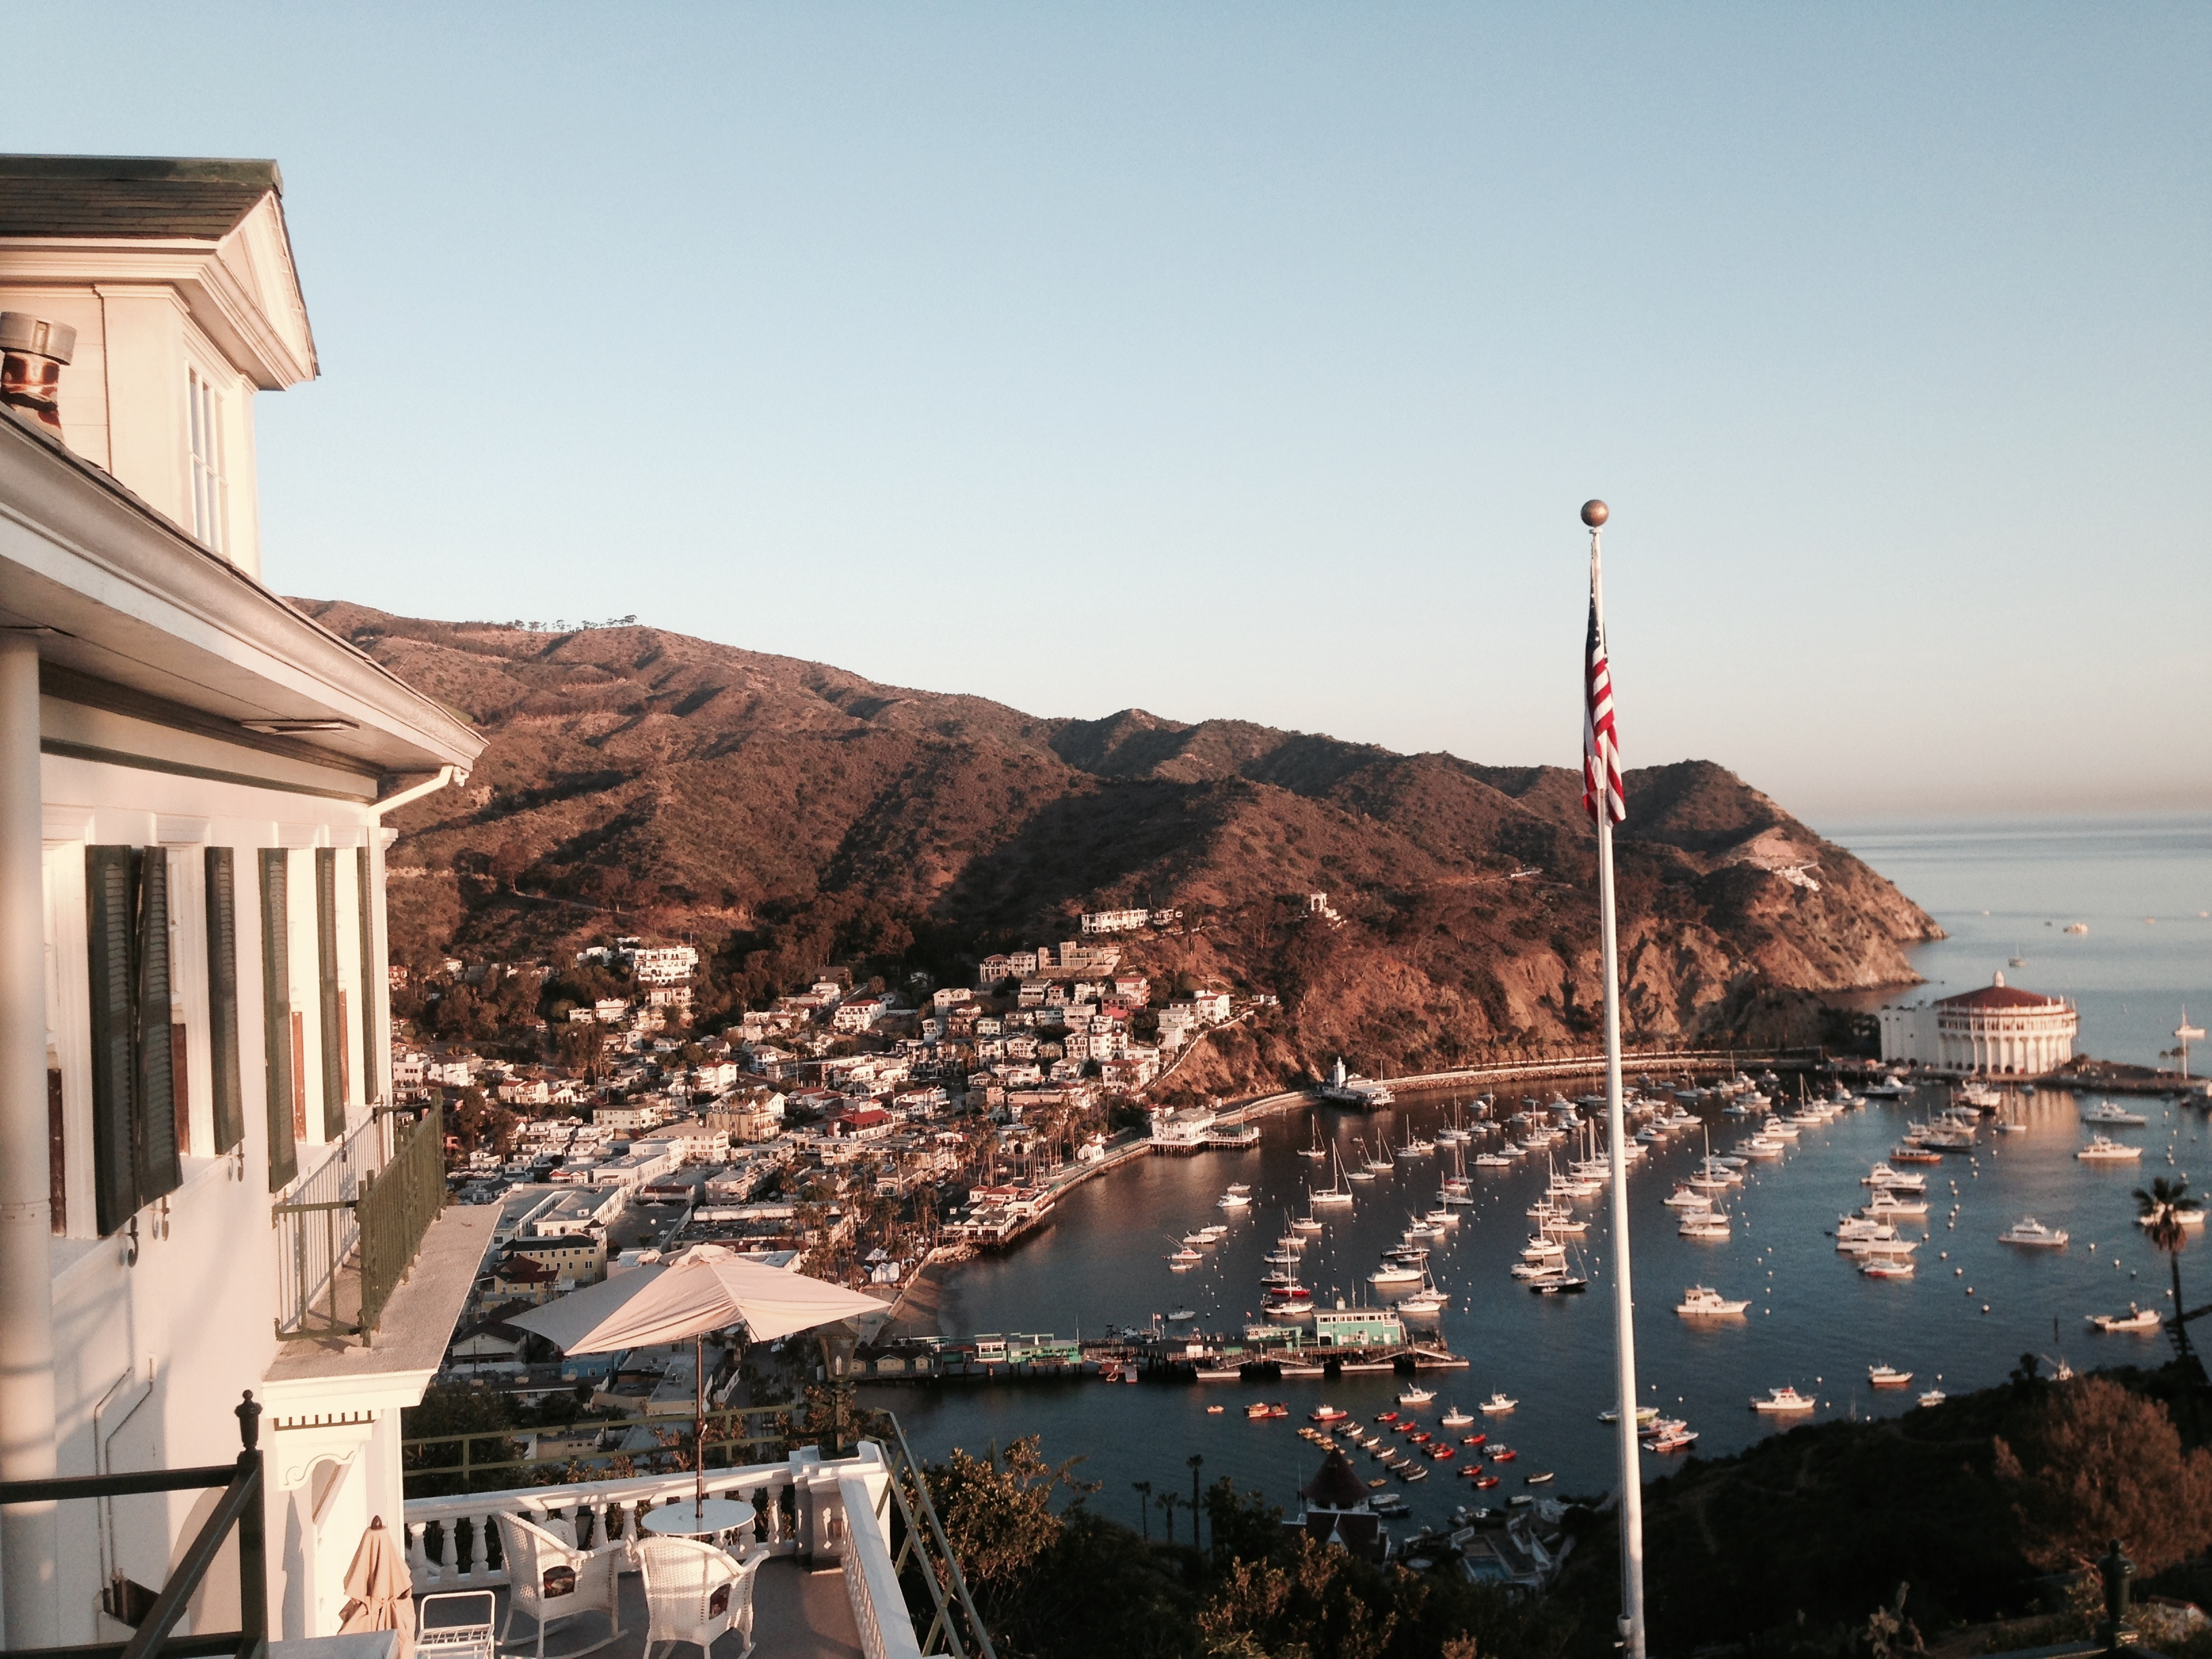 view of Avalon harbor at daybreak from Inn on Mt. Ada